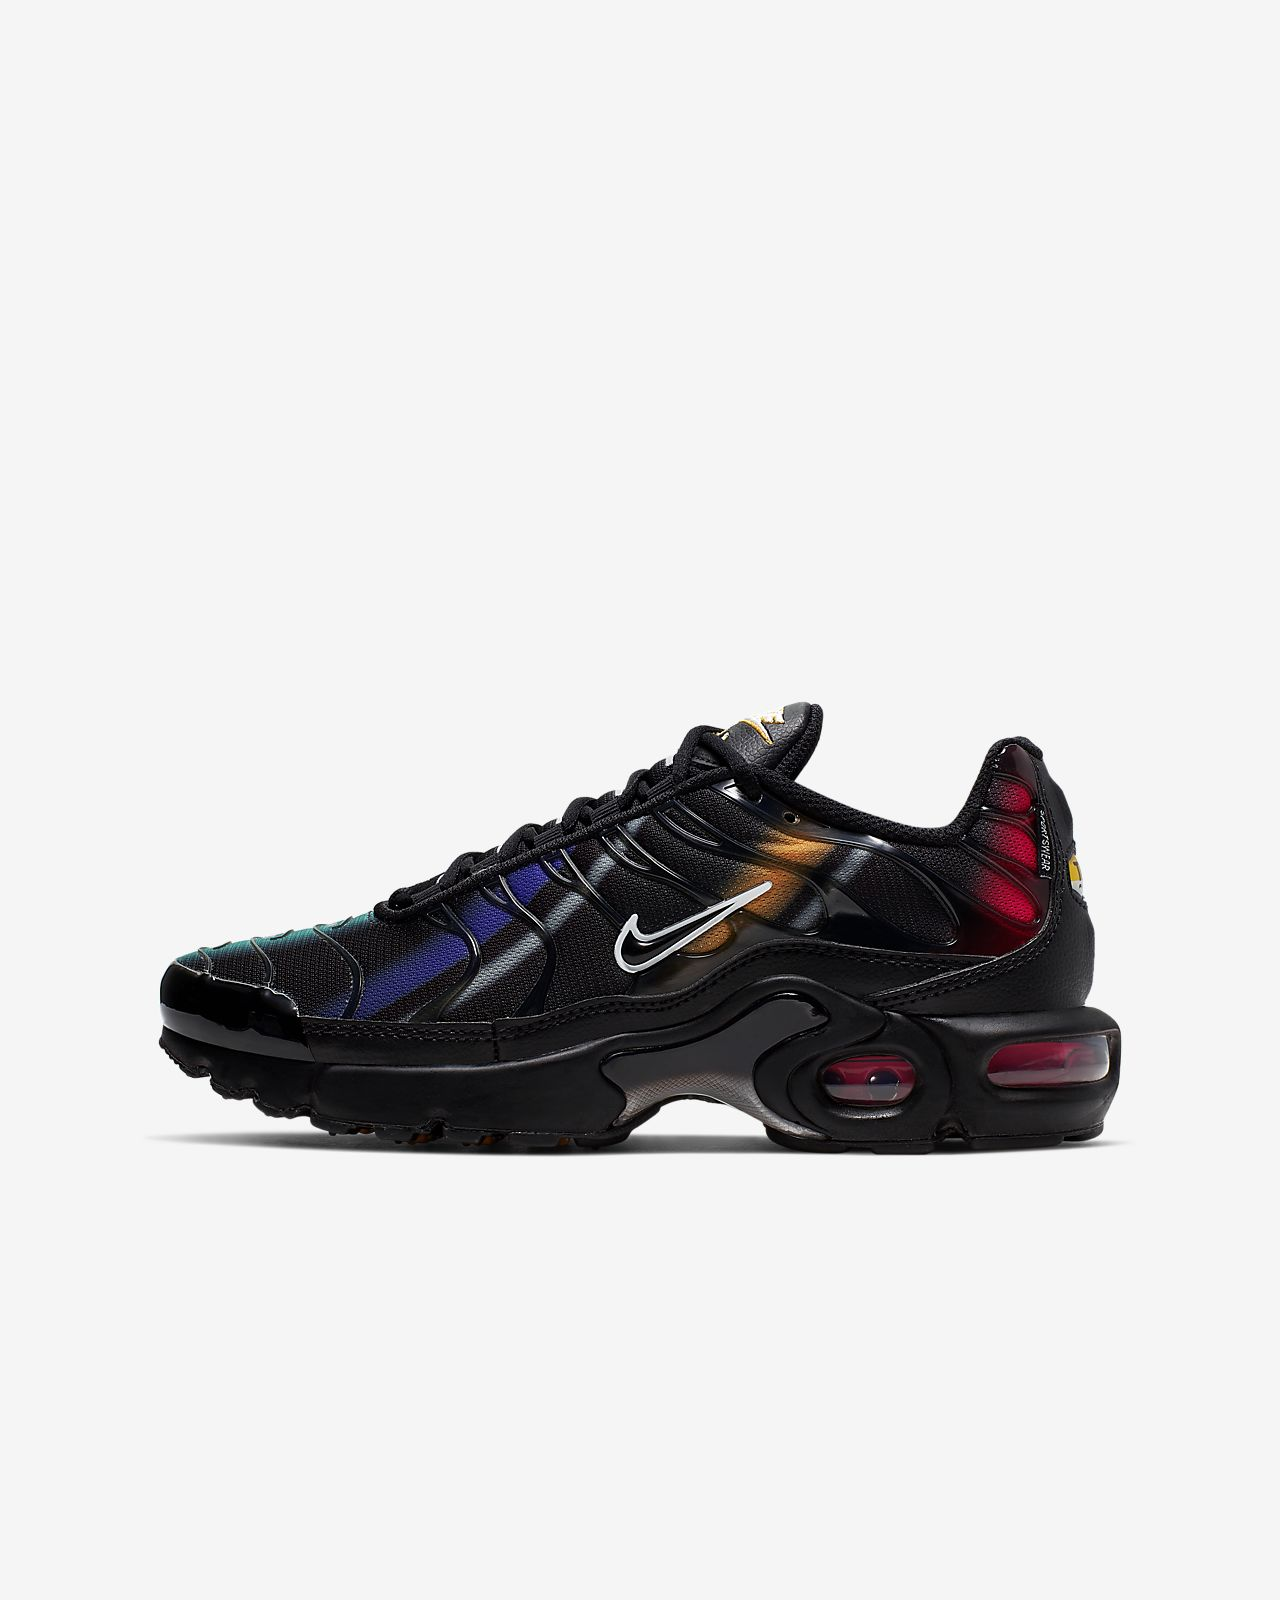 Sko Nike Air Max Plus Game för ungdom